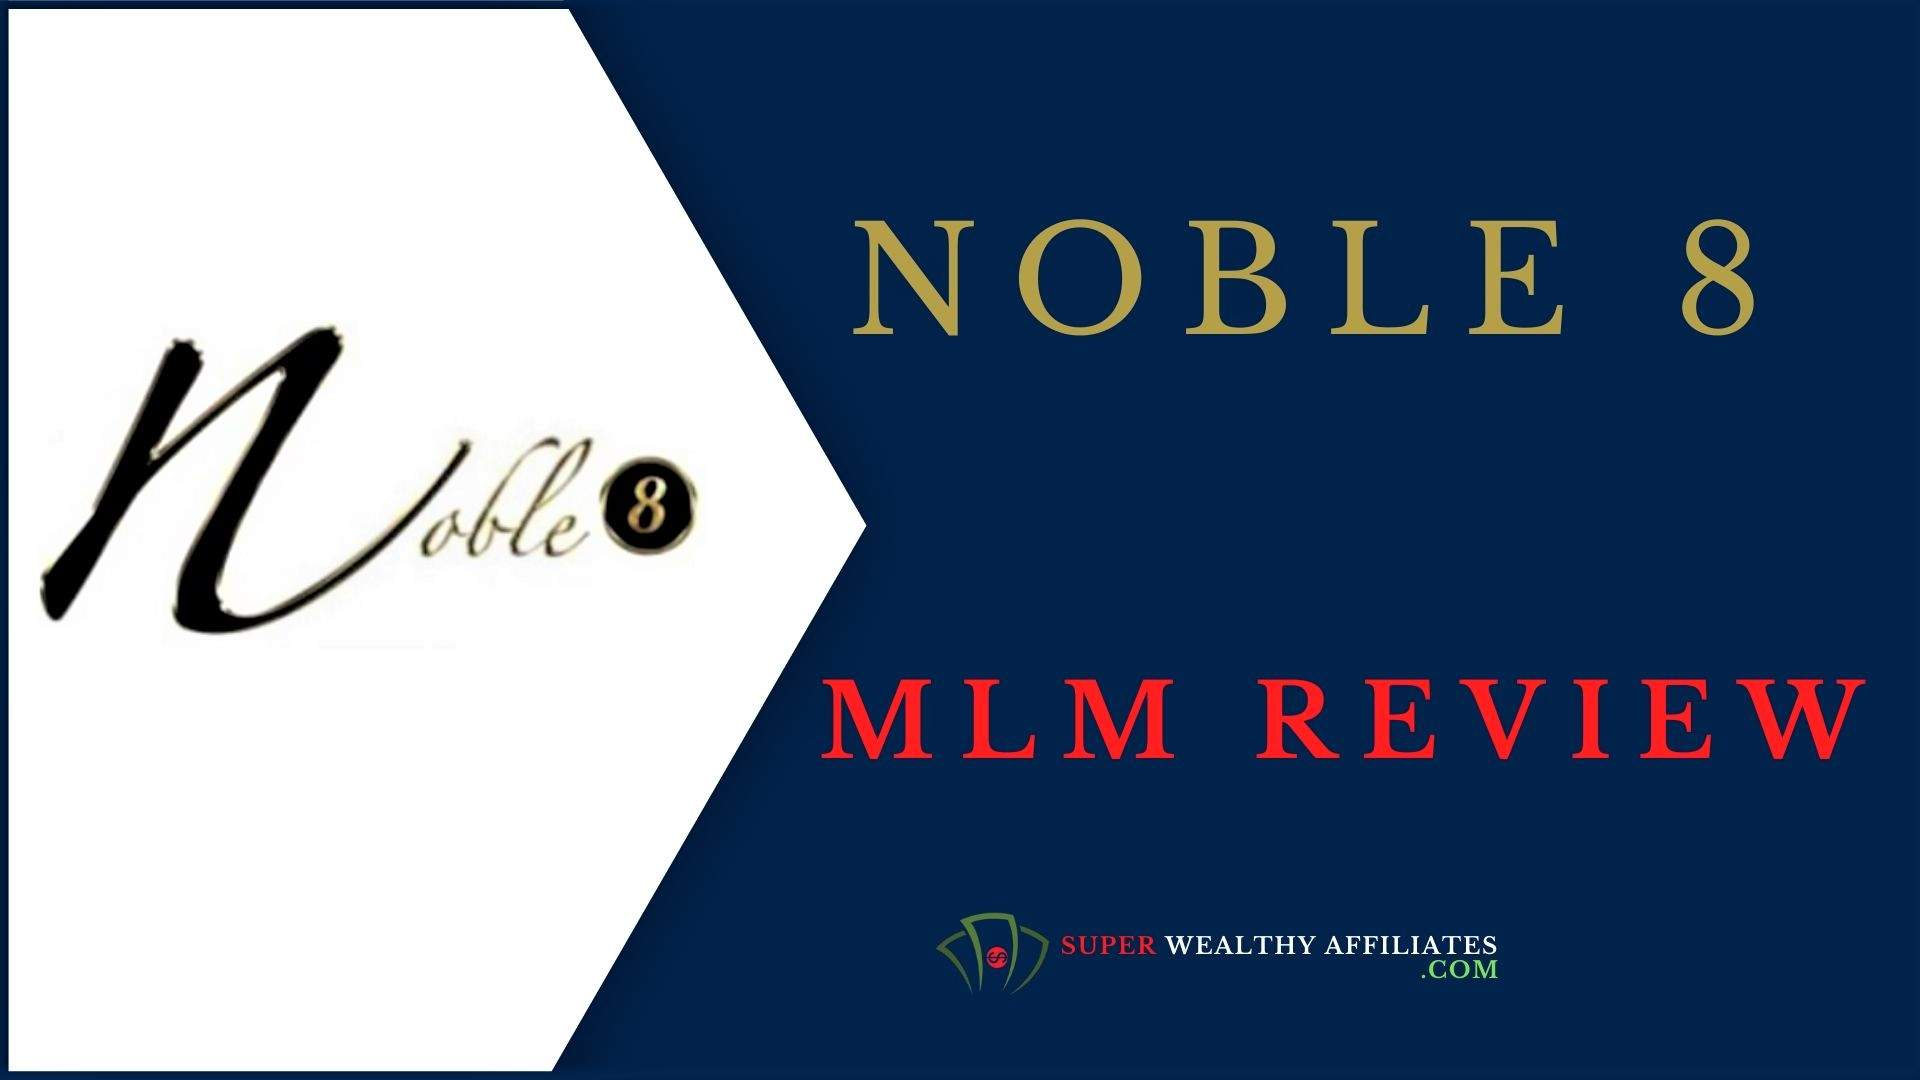 Super-Wealthy-Affiliates-noble-8-review